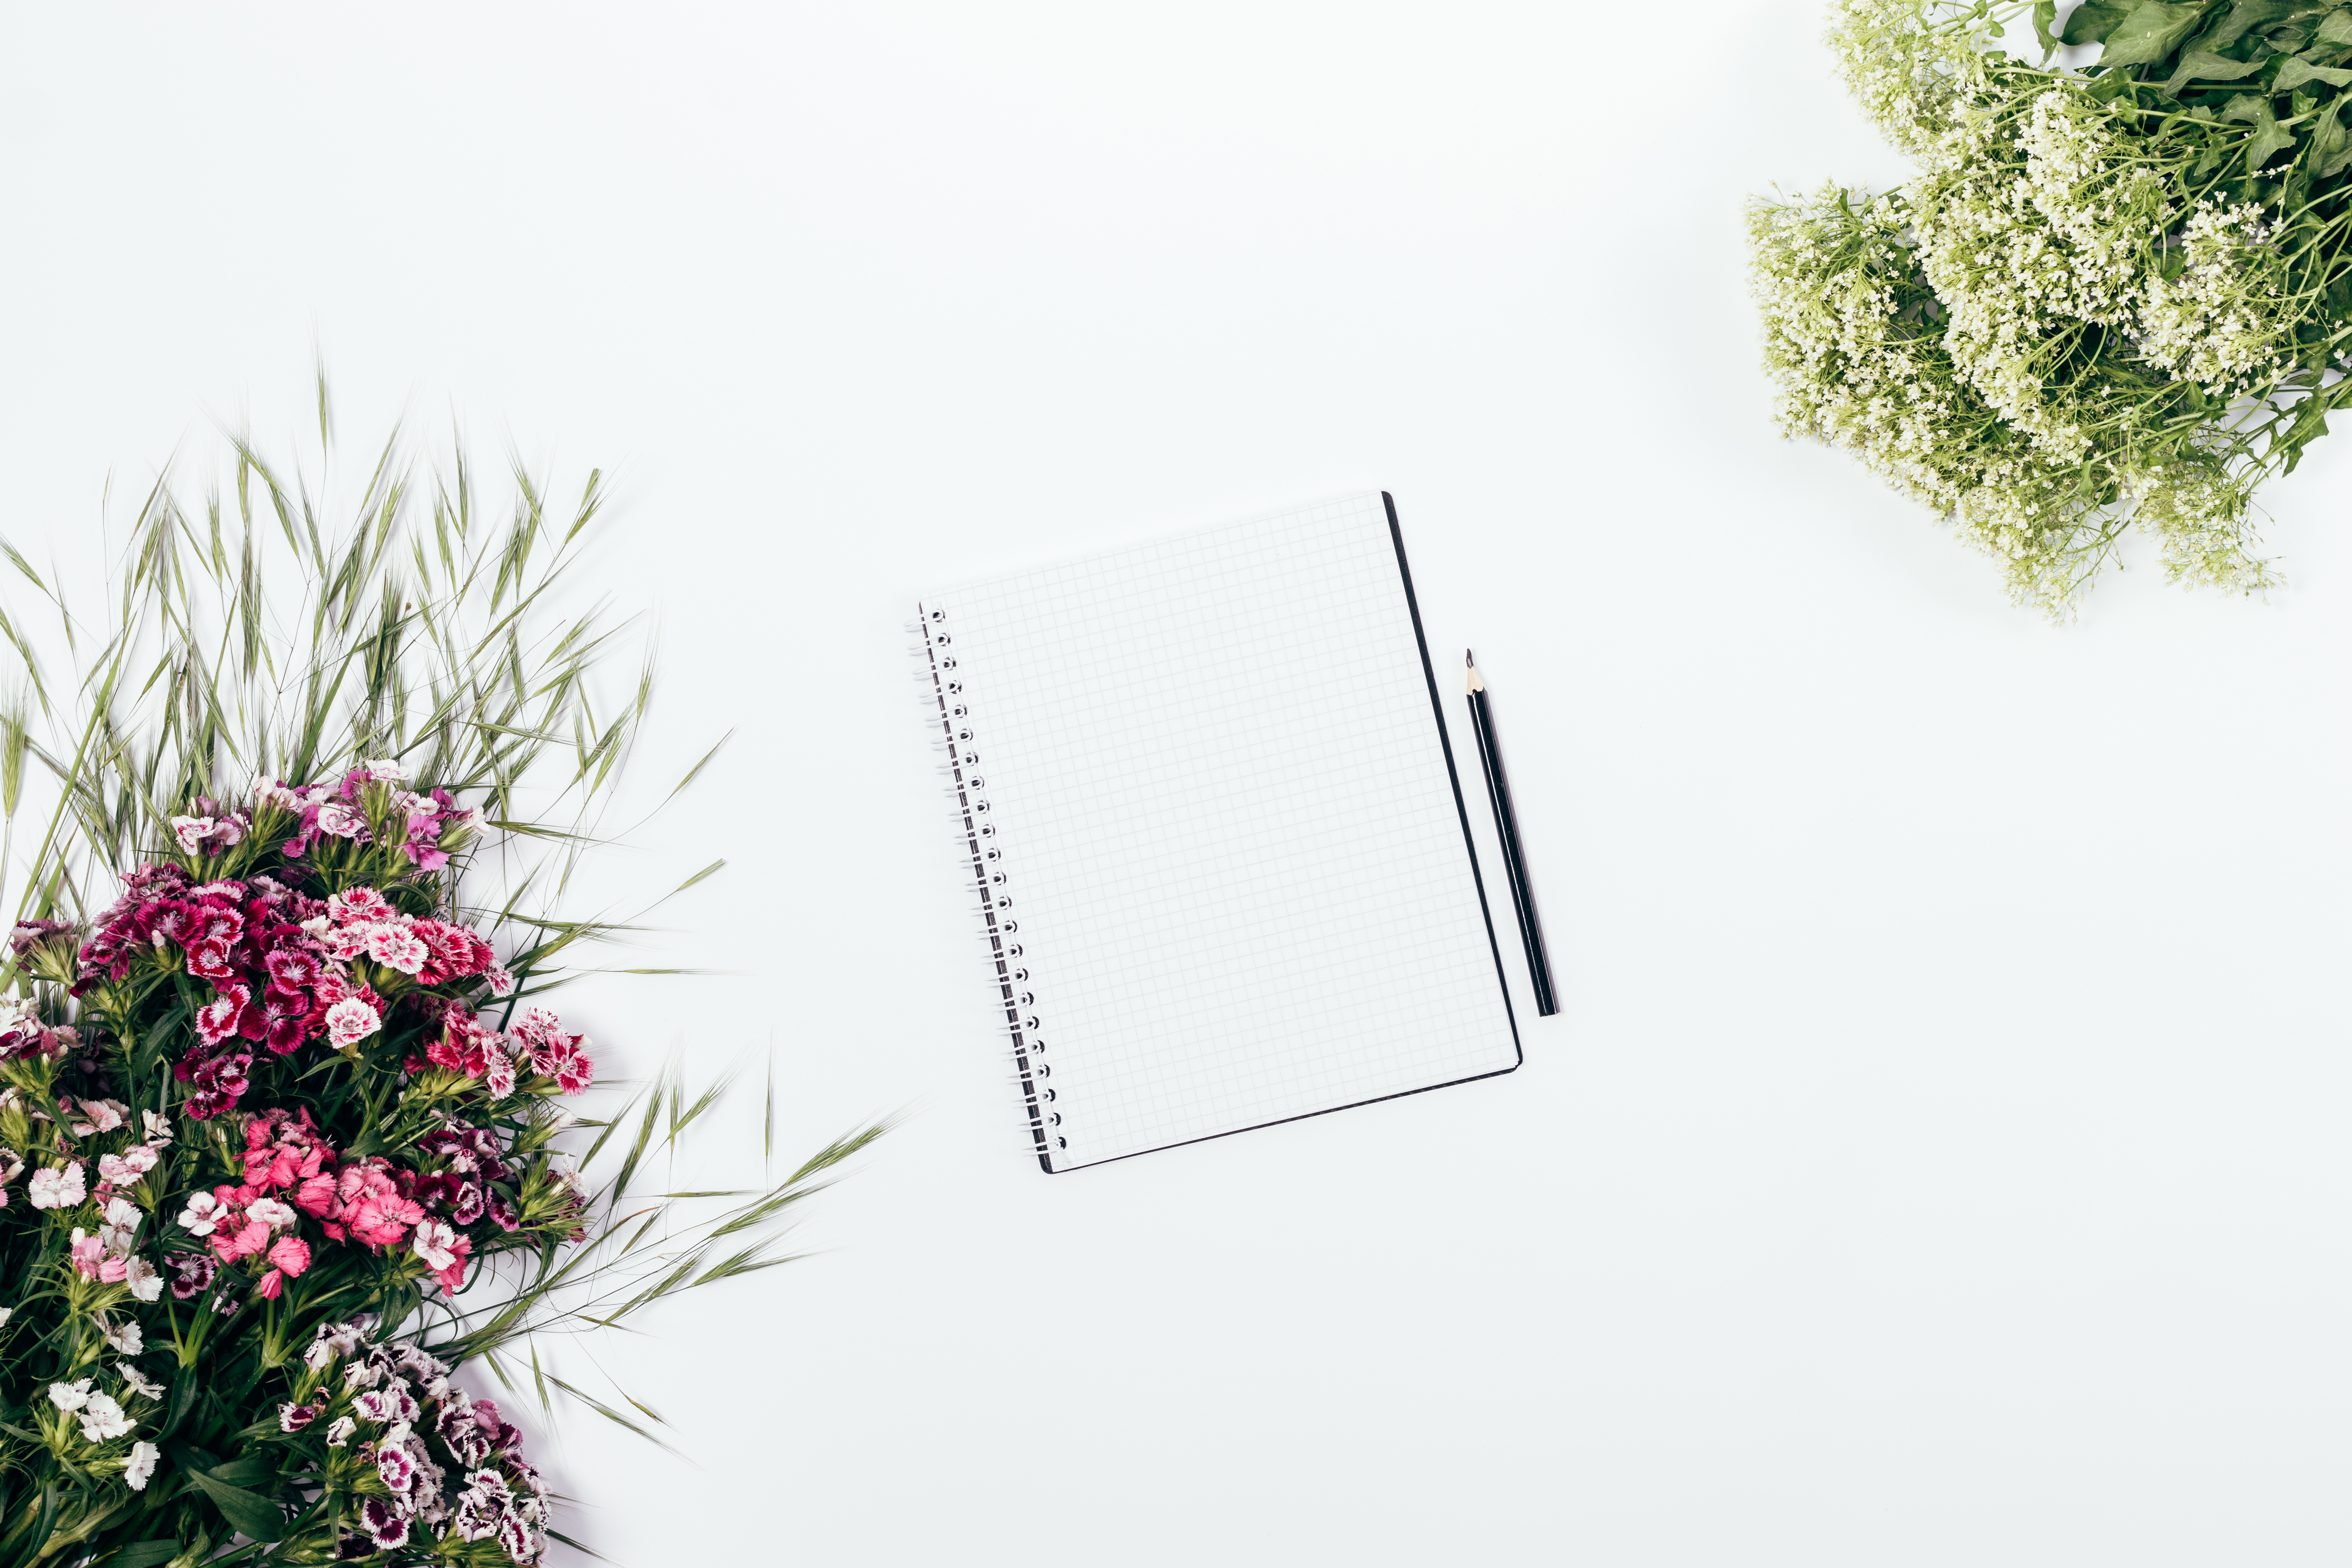 Six month goal review reflection exercise